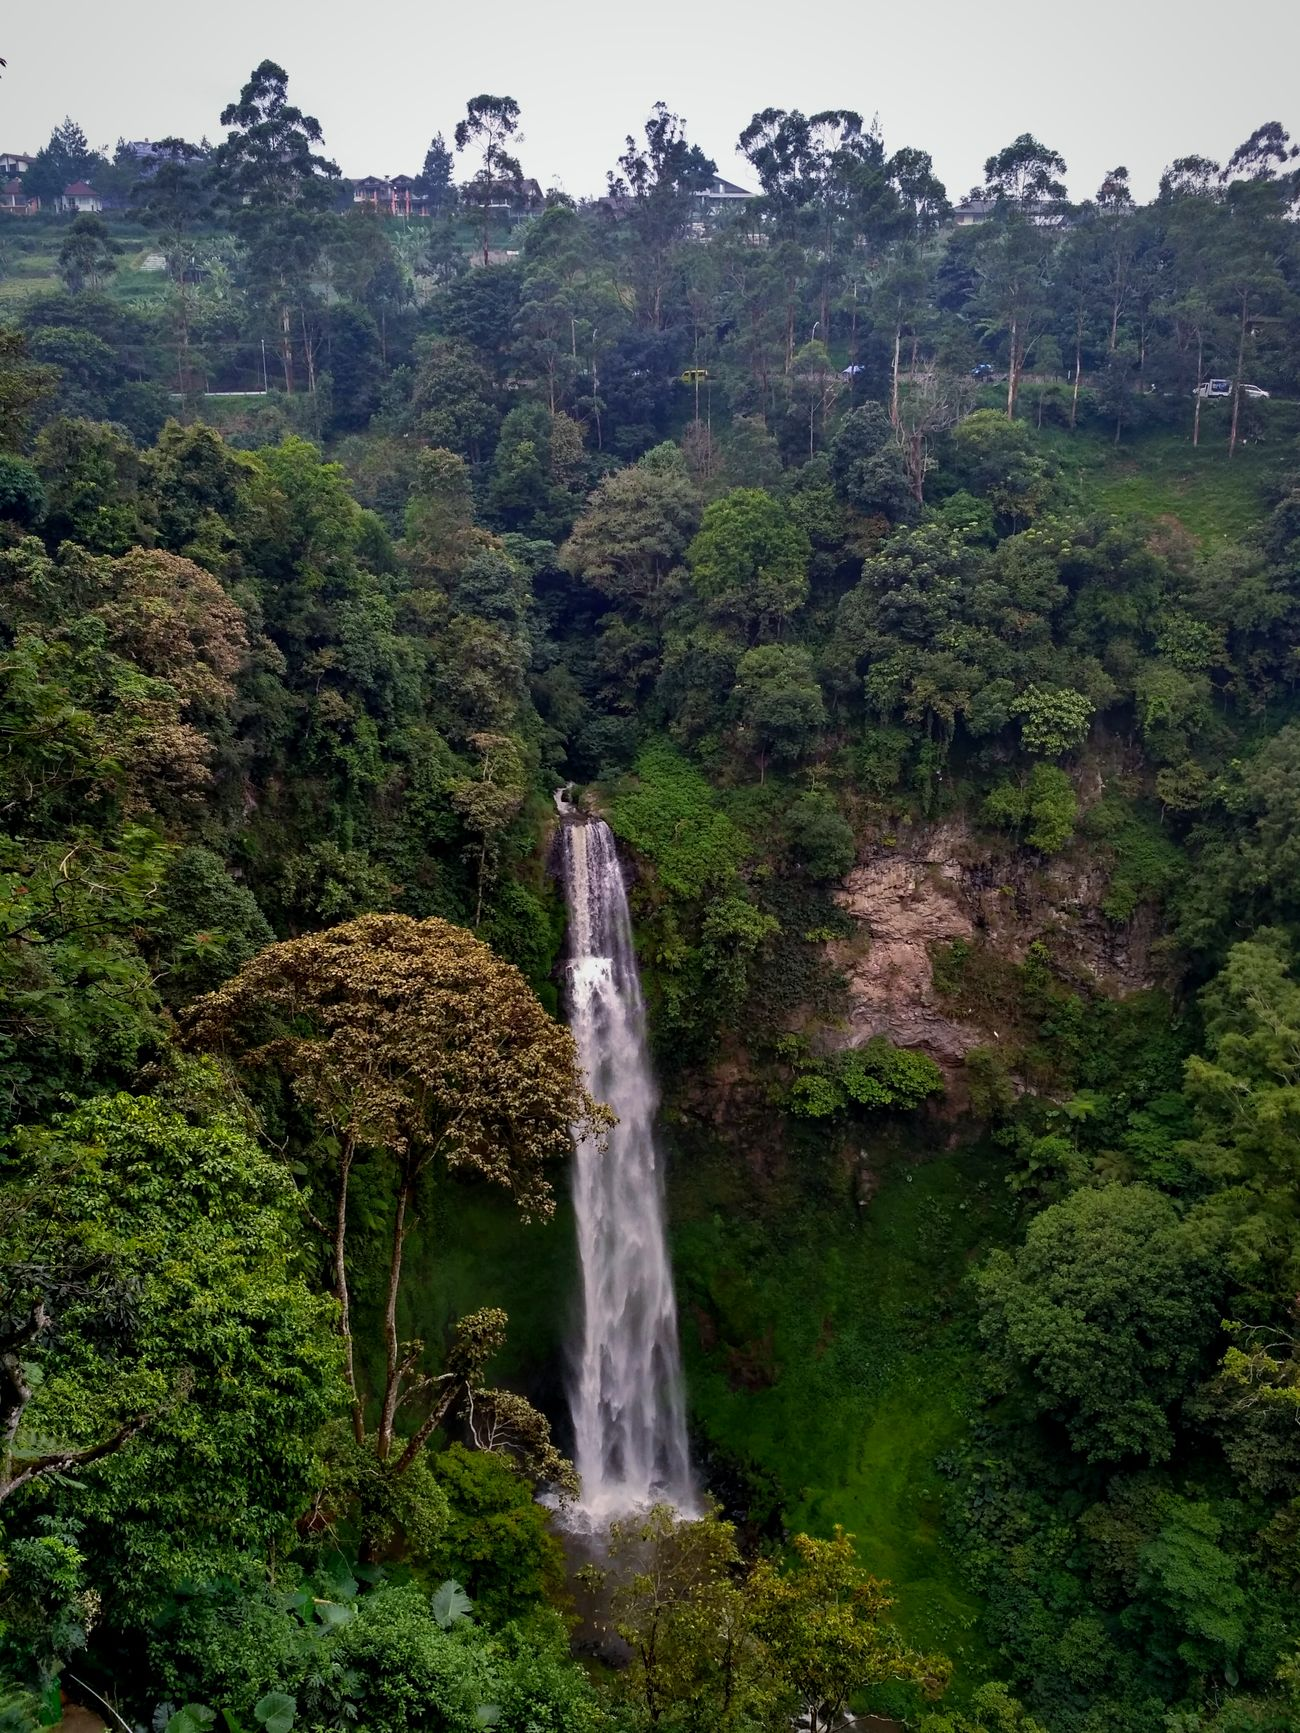 Tree No People Nature Green Color Outdoors Day Plant Growth Water Beauty In Nature Scenics Sky Waterfall Waterfalls And Calming Views  Waterfalls💦 Capture The Moment Captured Moment Nature Tree